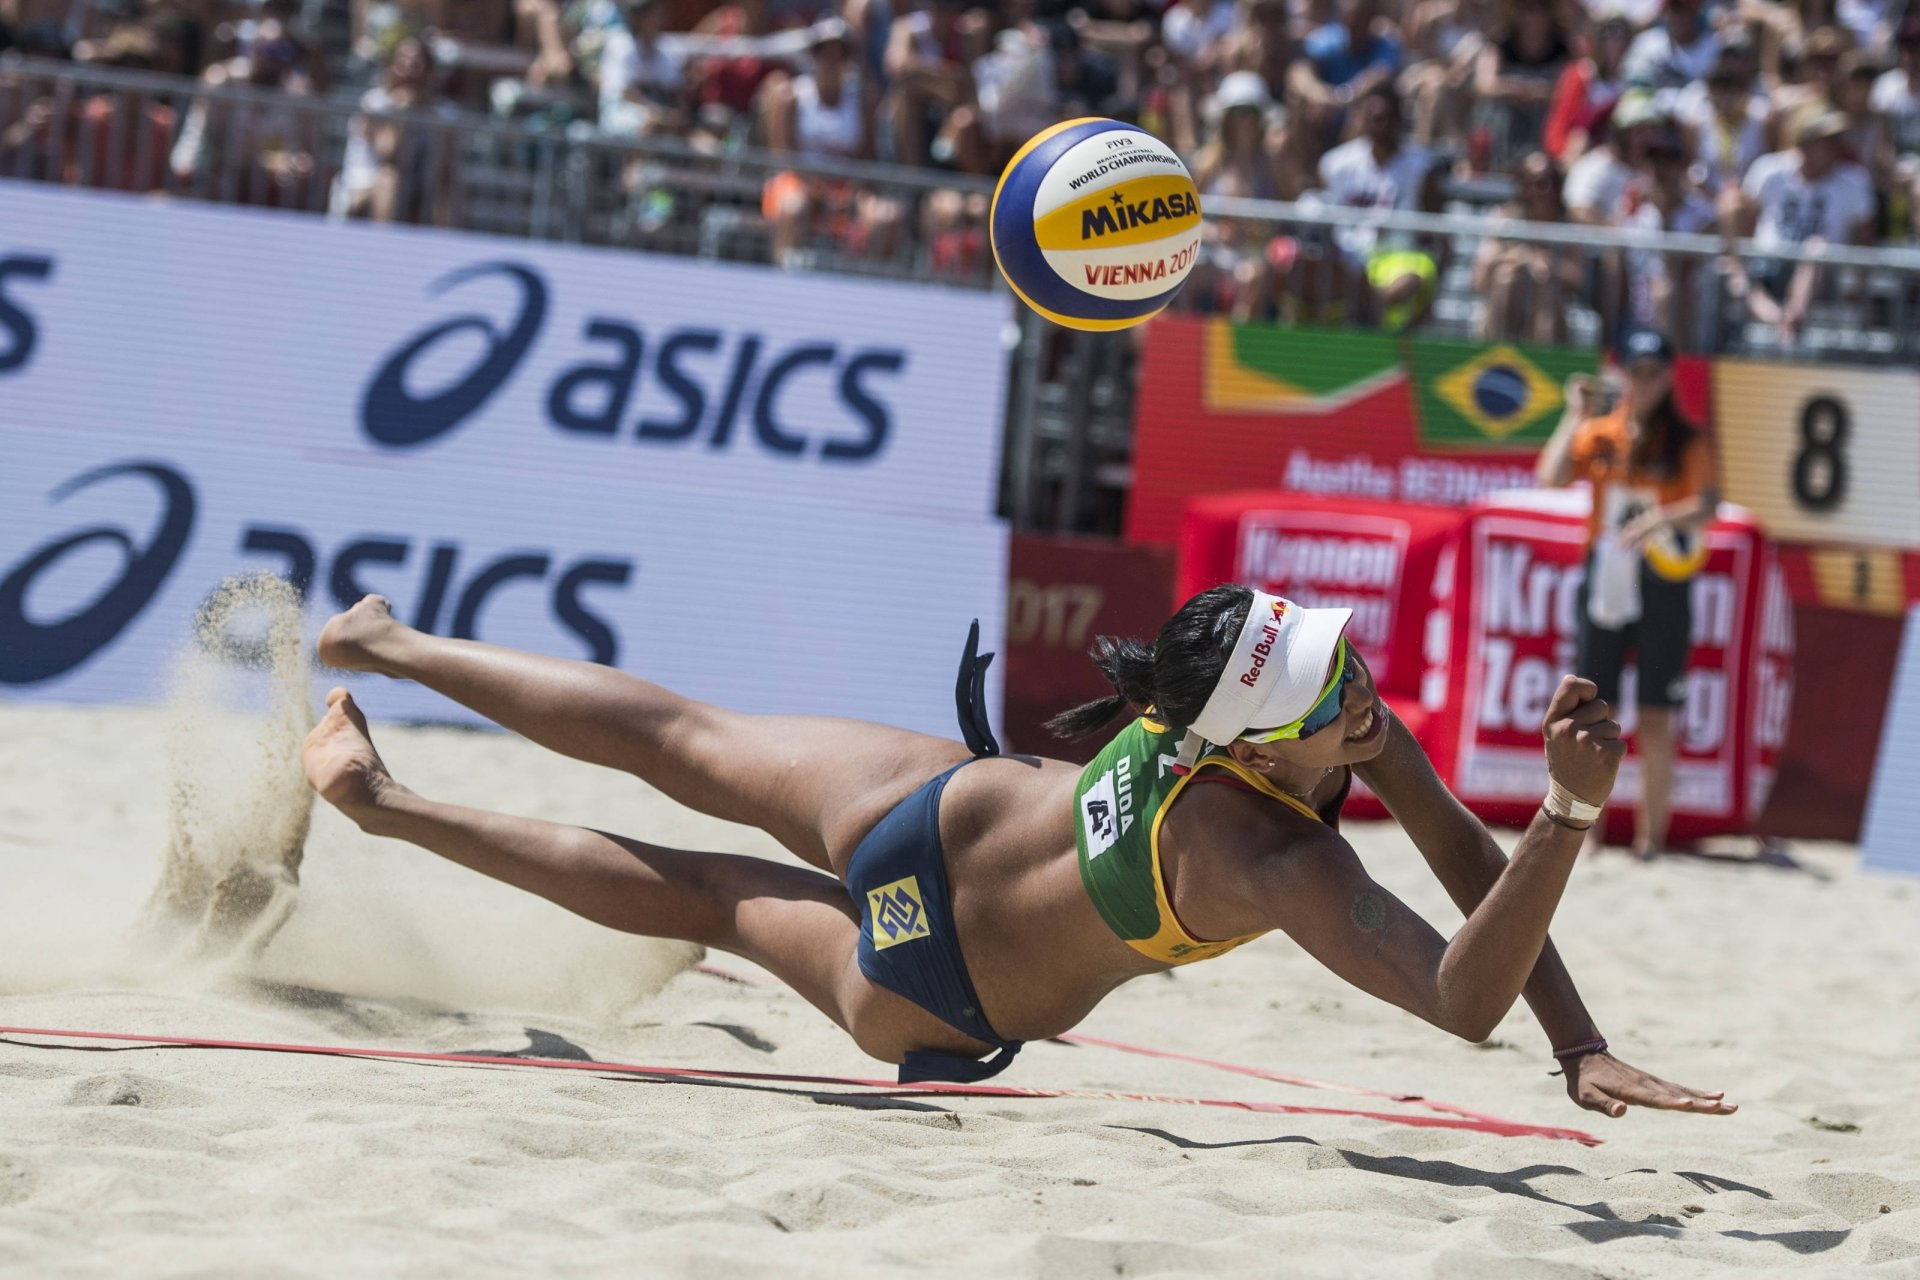 At 19, Duda has the beach volleyball world at her feet